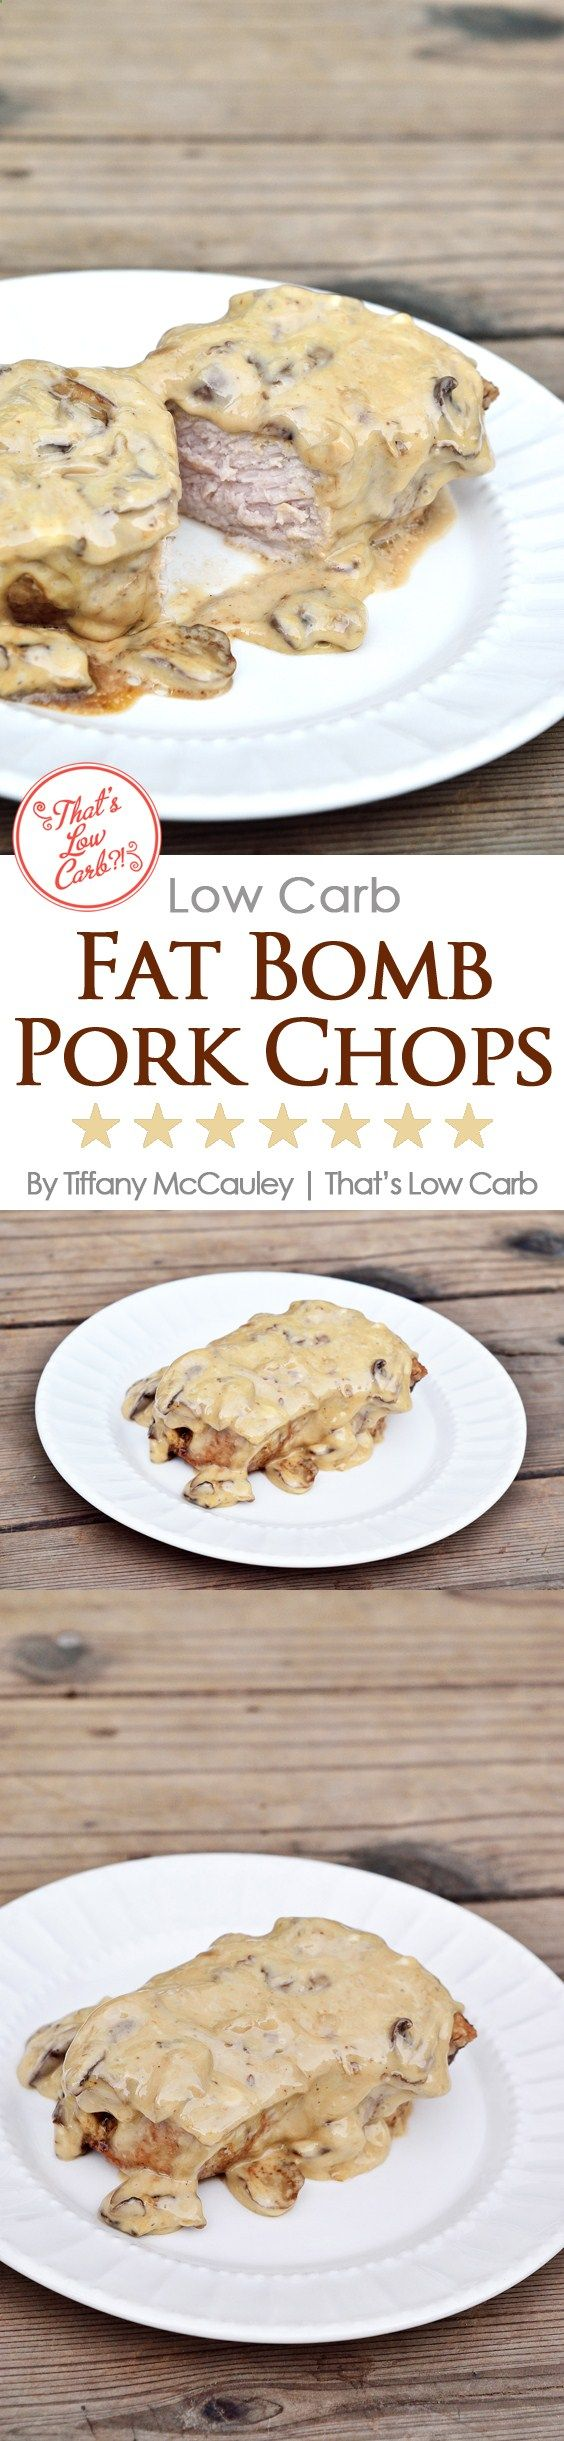 Low Carb Fat Bomb Pork Chops Recipe - Perfect for a Keto diet or just for generally getting plenty of fats in your low carb eating plan. ~ www.thatslowcarb.com